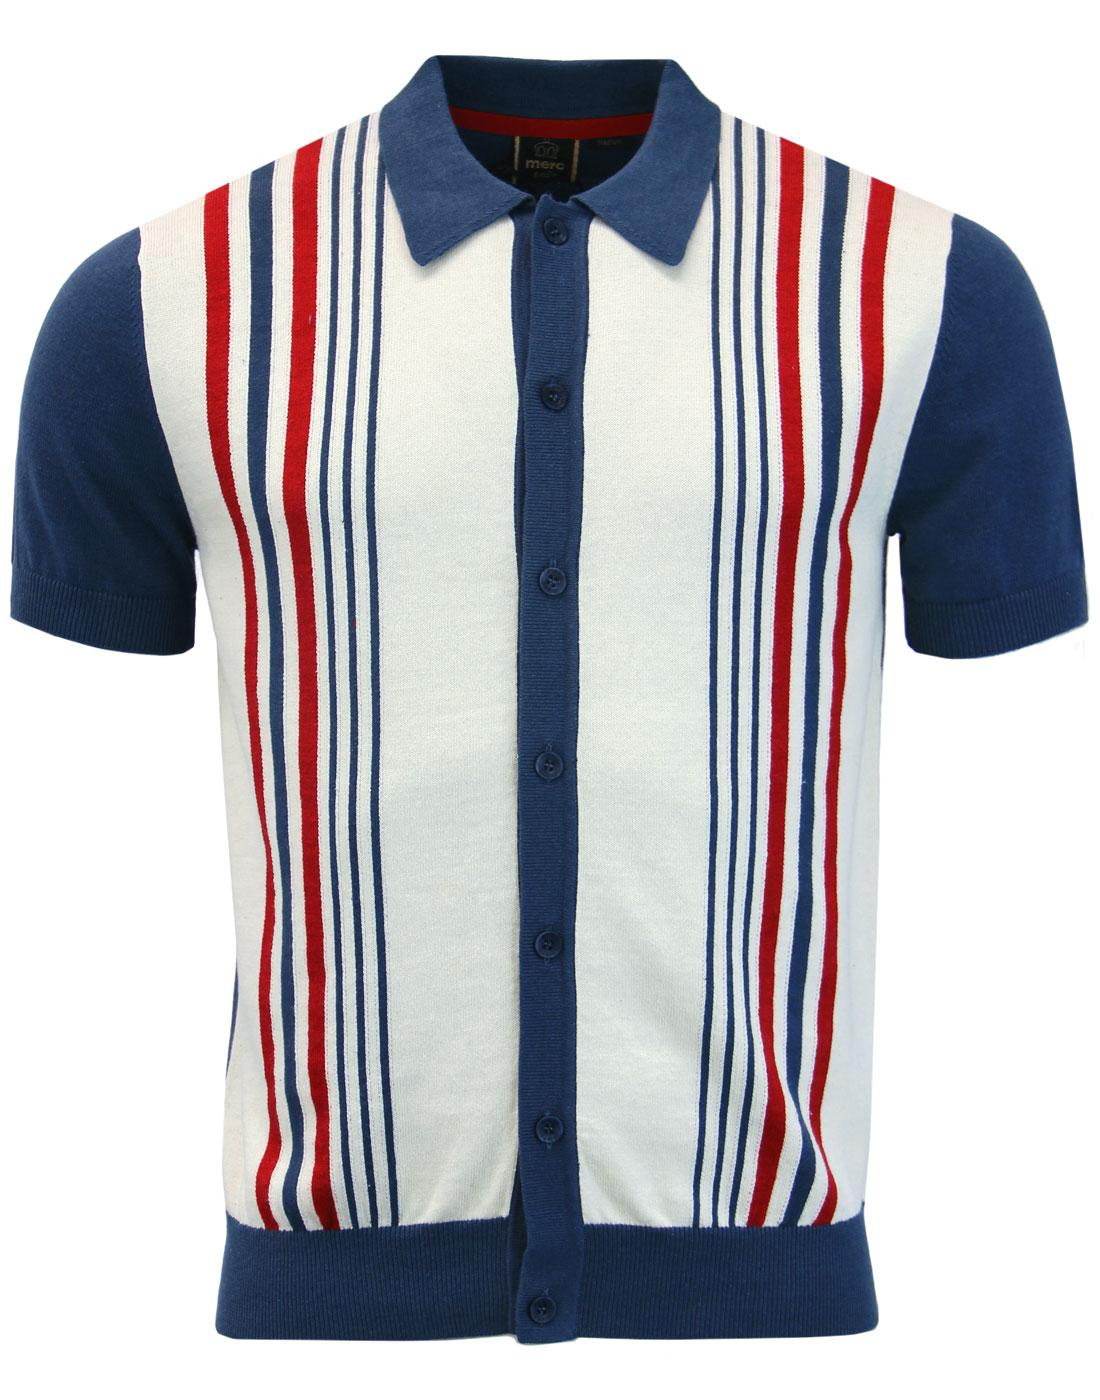 Nutley MERC 60s Mod Stripe Knit Polo Cardigan BLUE